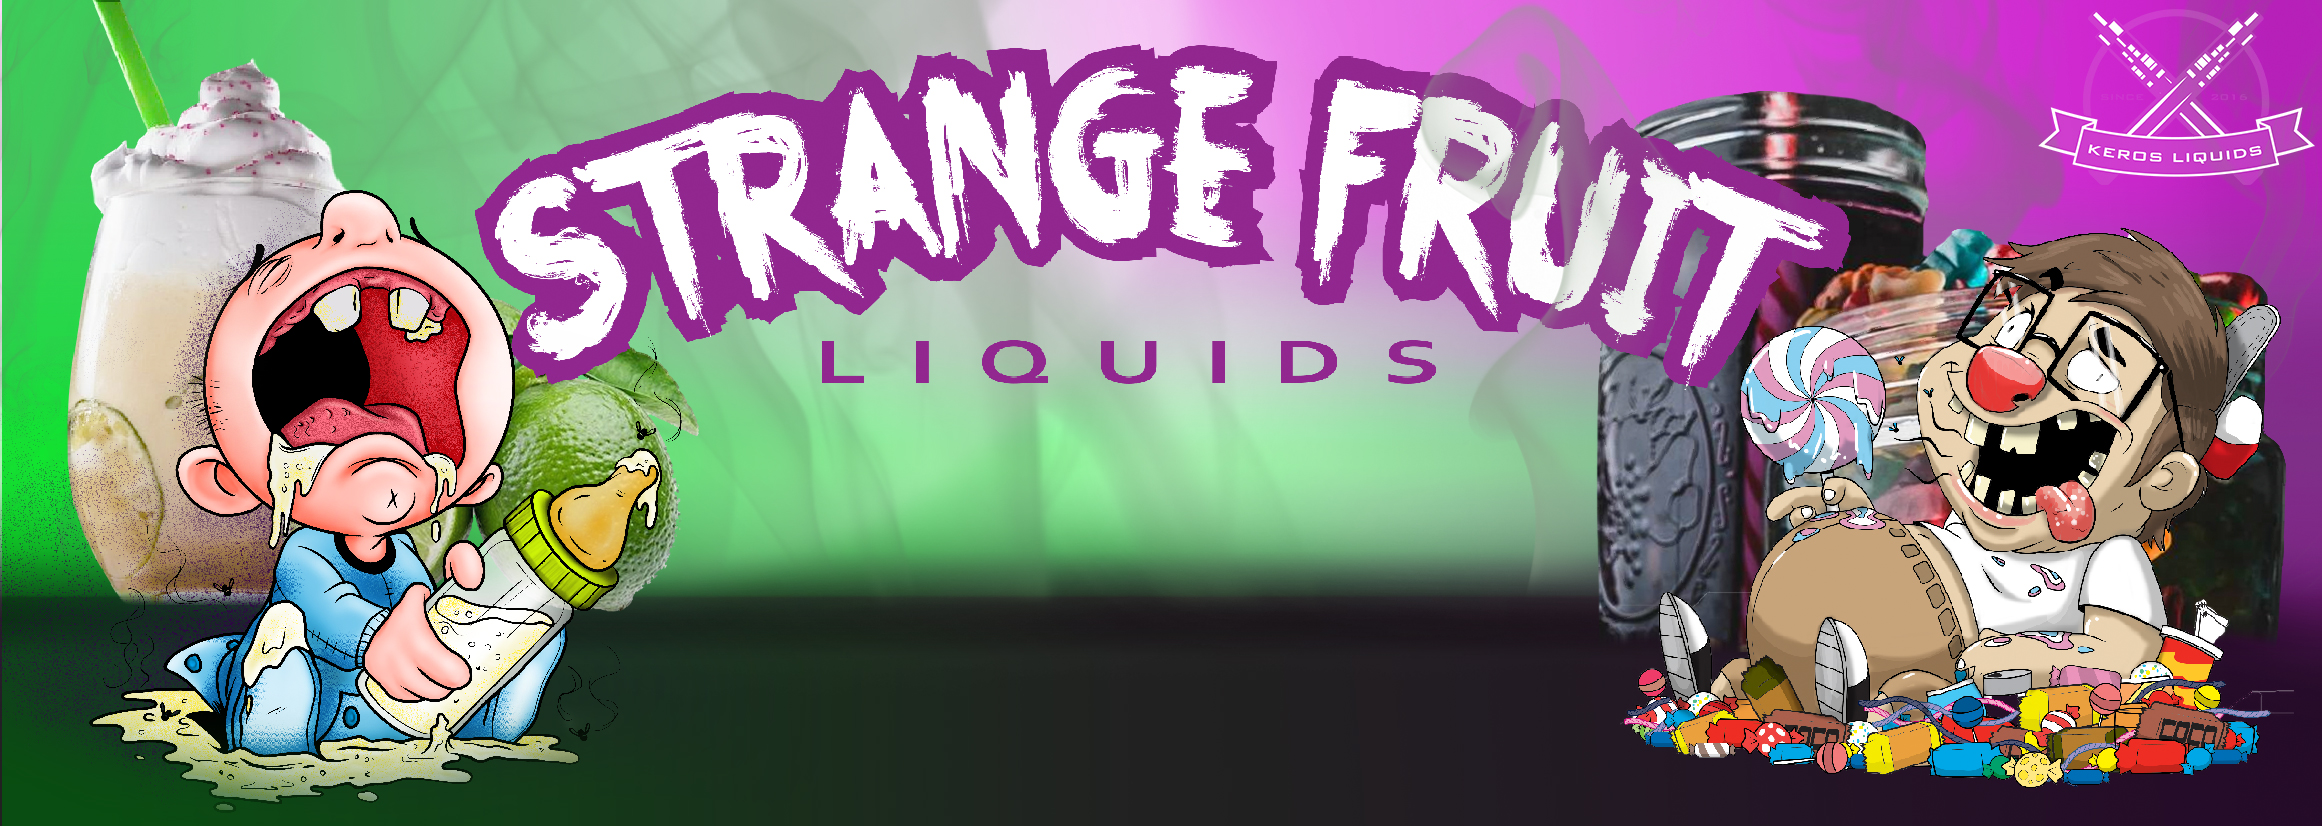 Strange-Fruit-Banner-Category-KerosLiquids